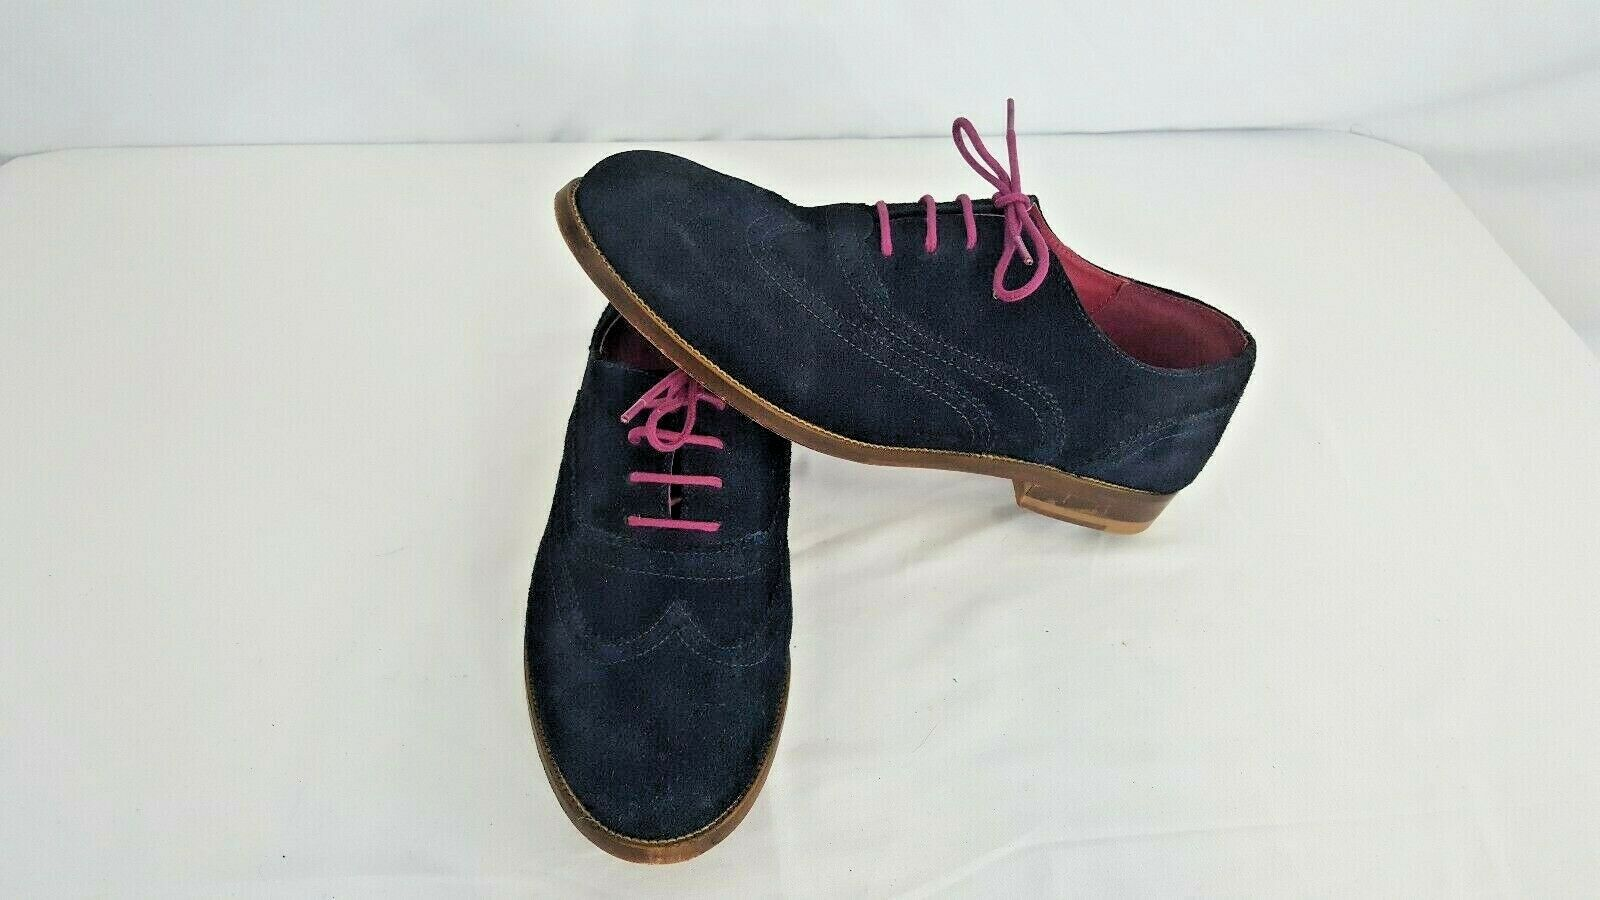 Boden Women's bluee Pink Suede Oxford Wingtip Brogue Lace Up shoes SZ 42 11.5US